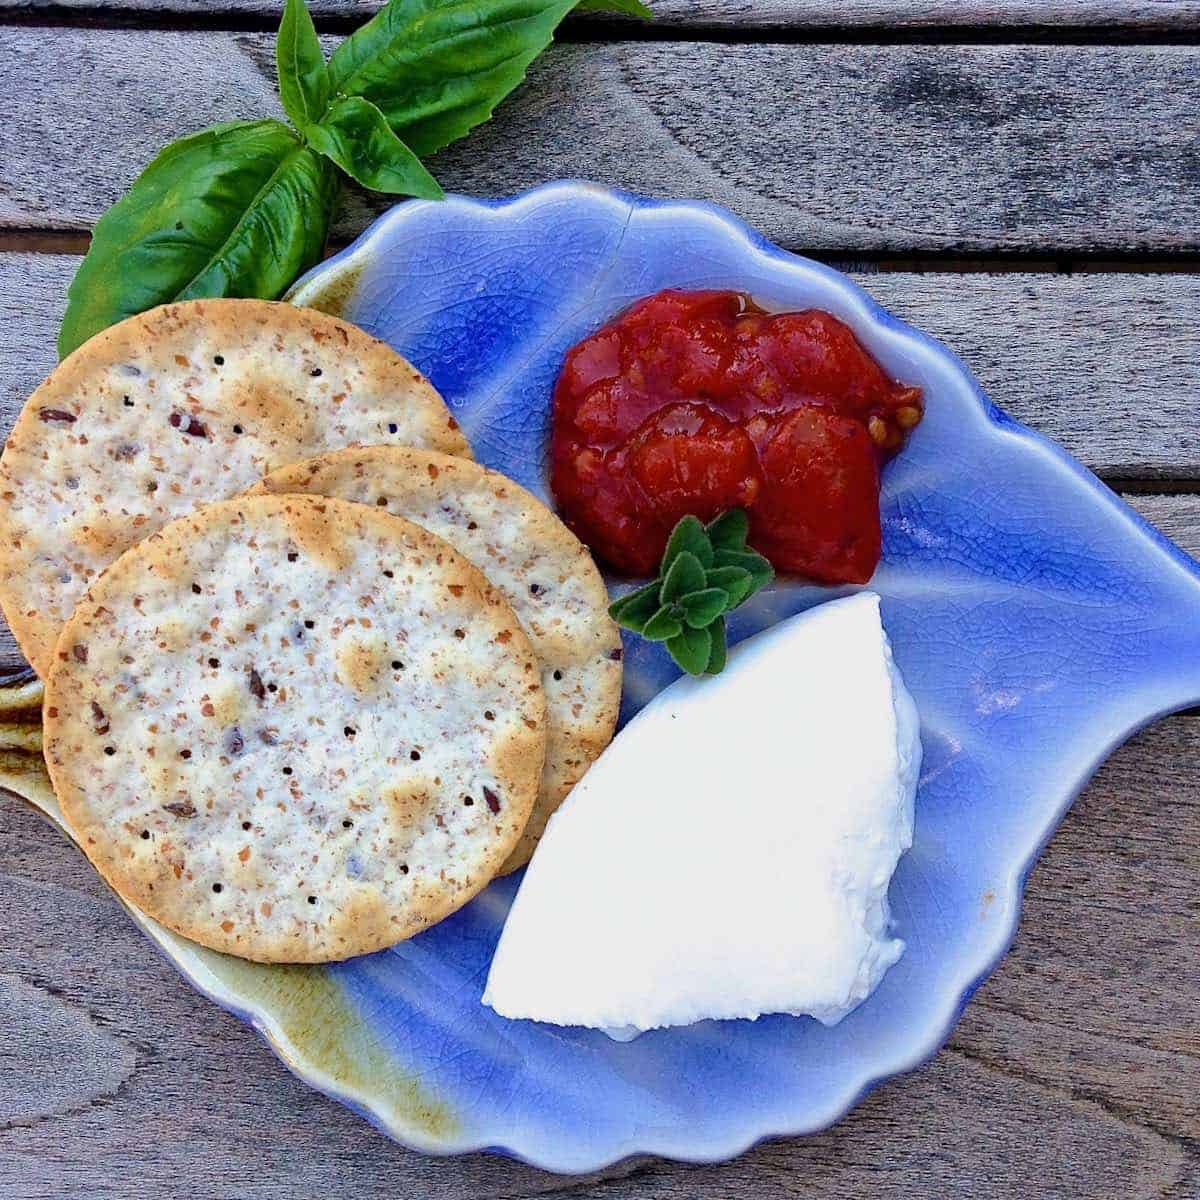 It's the jam with fresh oregano, cheese and crackers